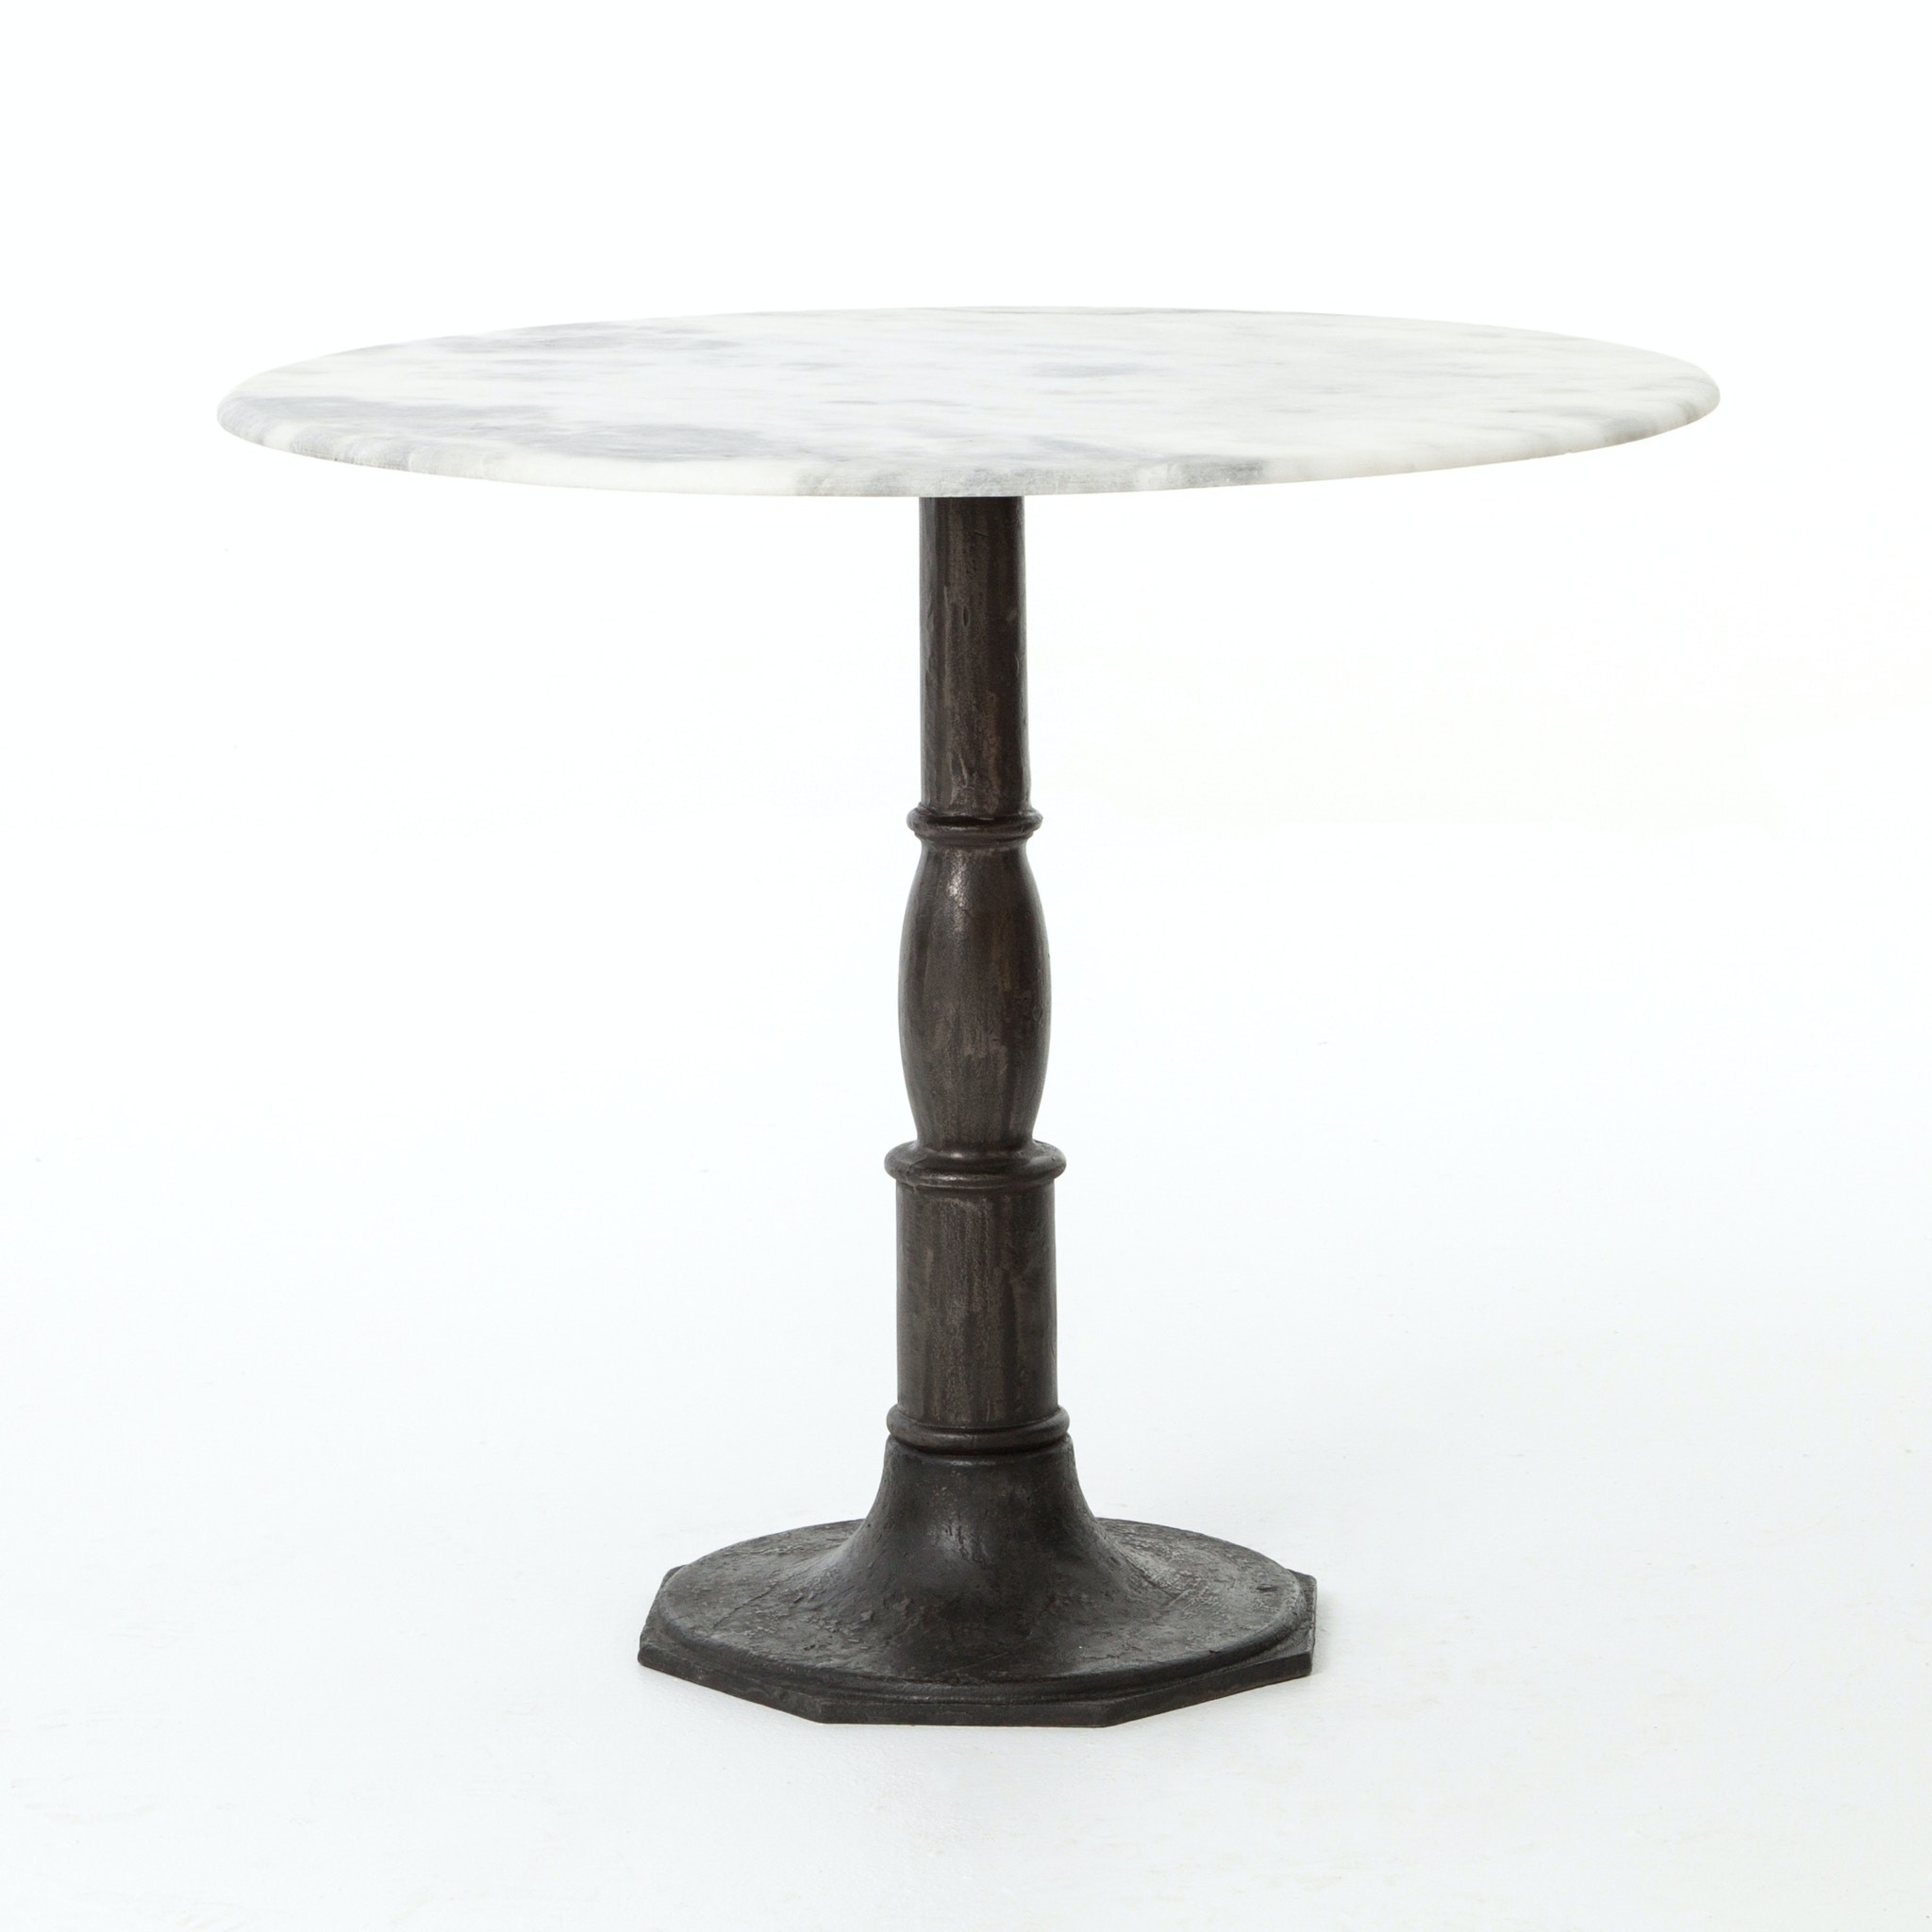 Four Hands Furniture IRCK 049 CBW Dining Room LUCY BISTRO TABLE